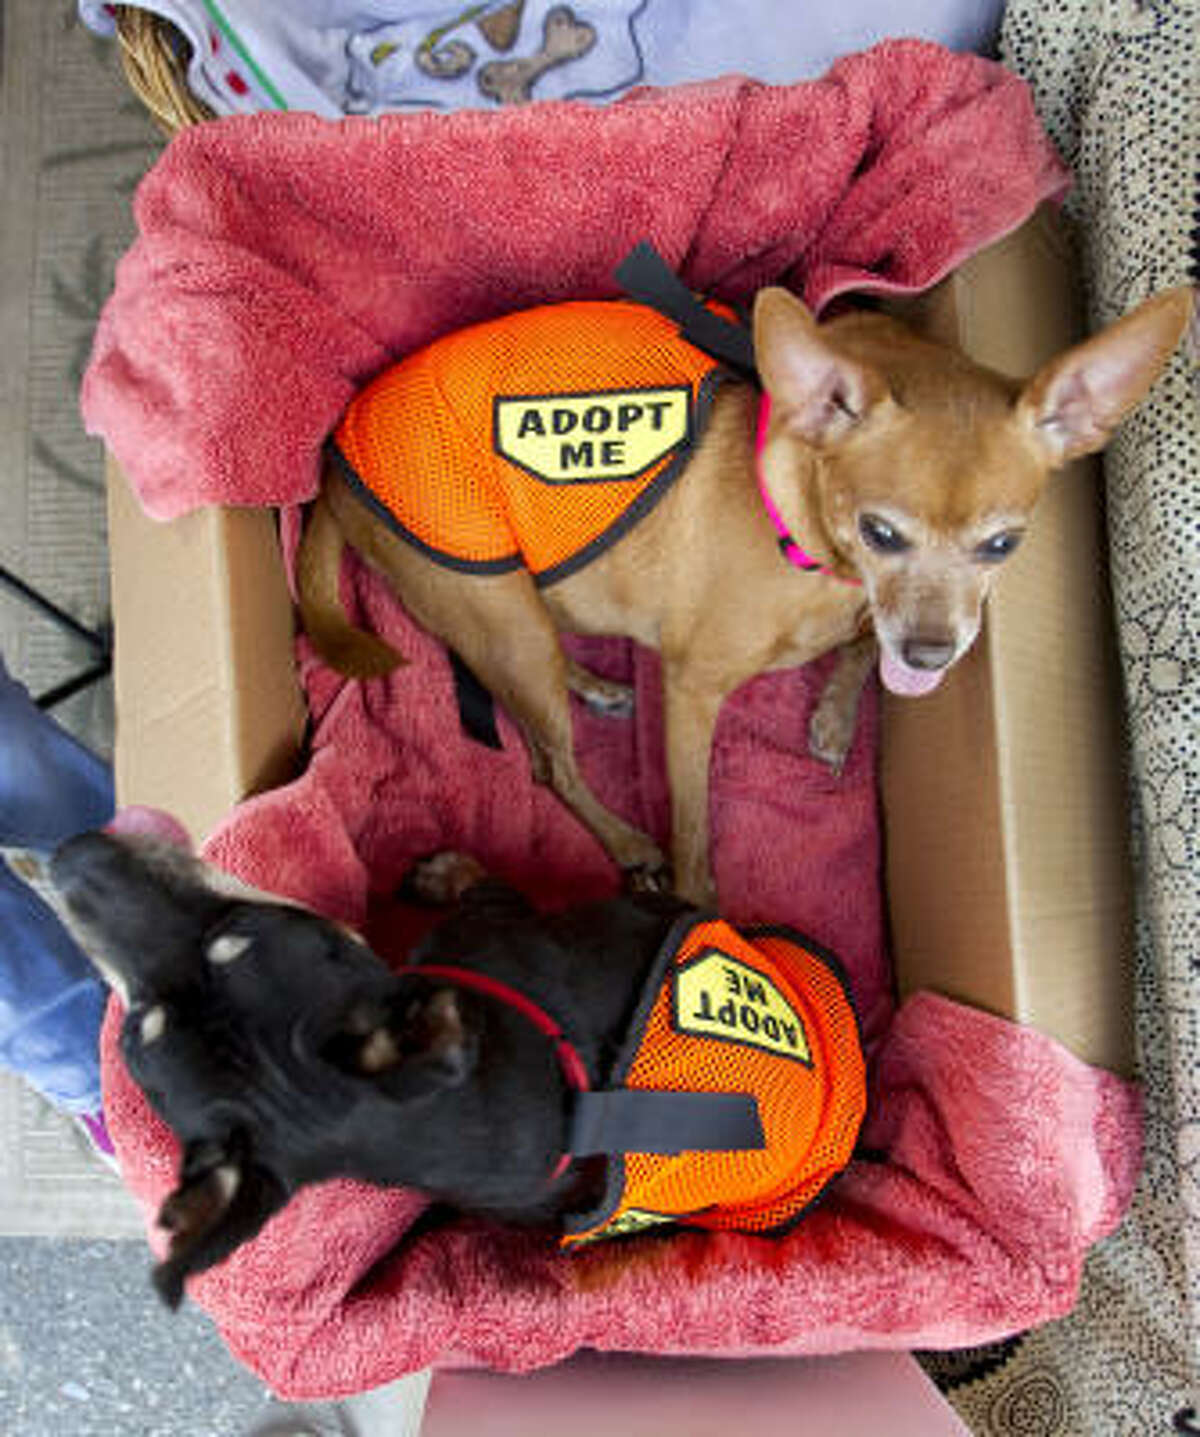 Taz and Sophie sit in a box at the Pure Mutts Animal Sanctuary booth during PetFest 2010 in Spring.